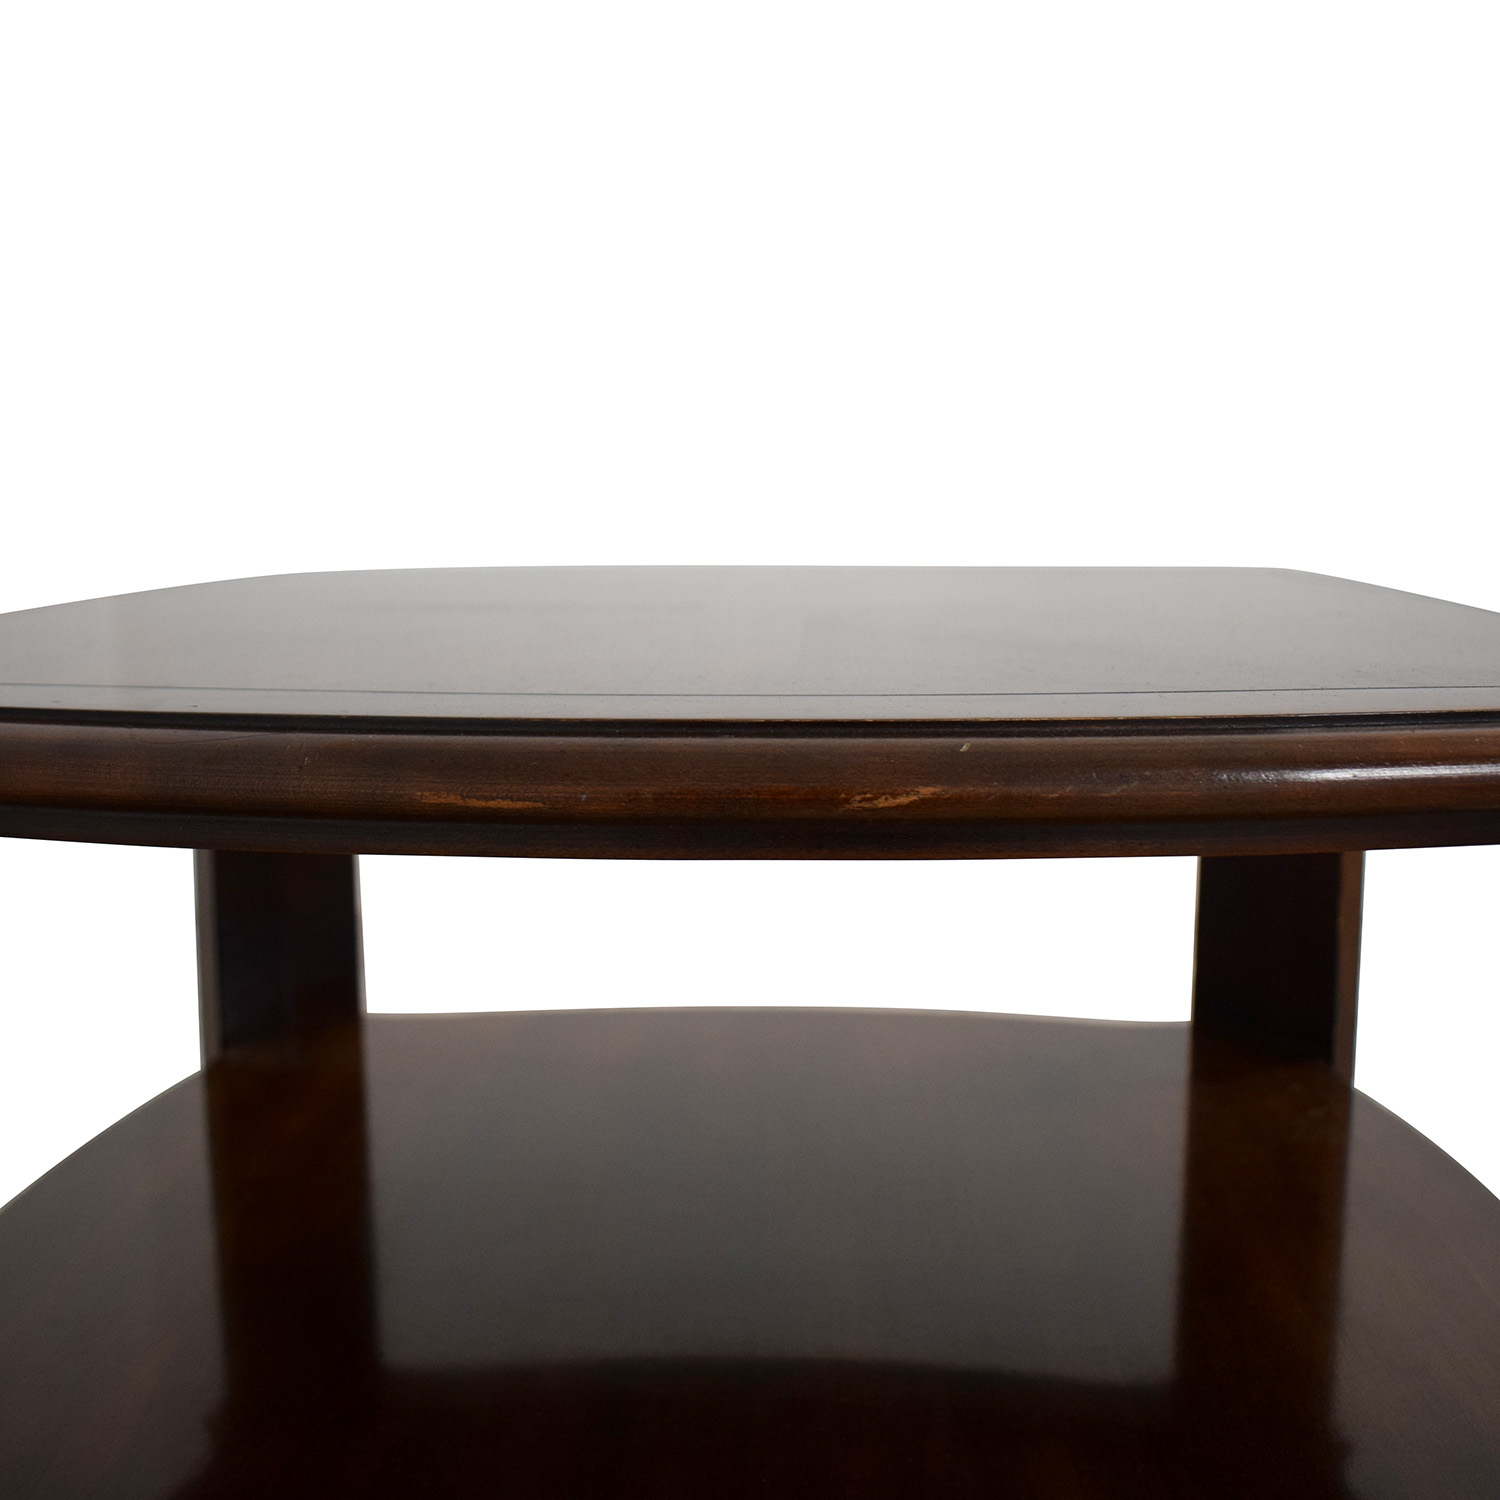 Three Level End Table dark brown